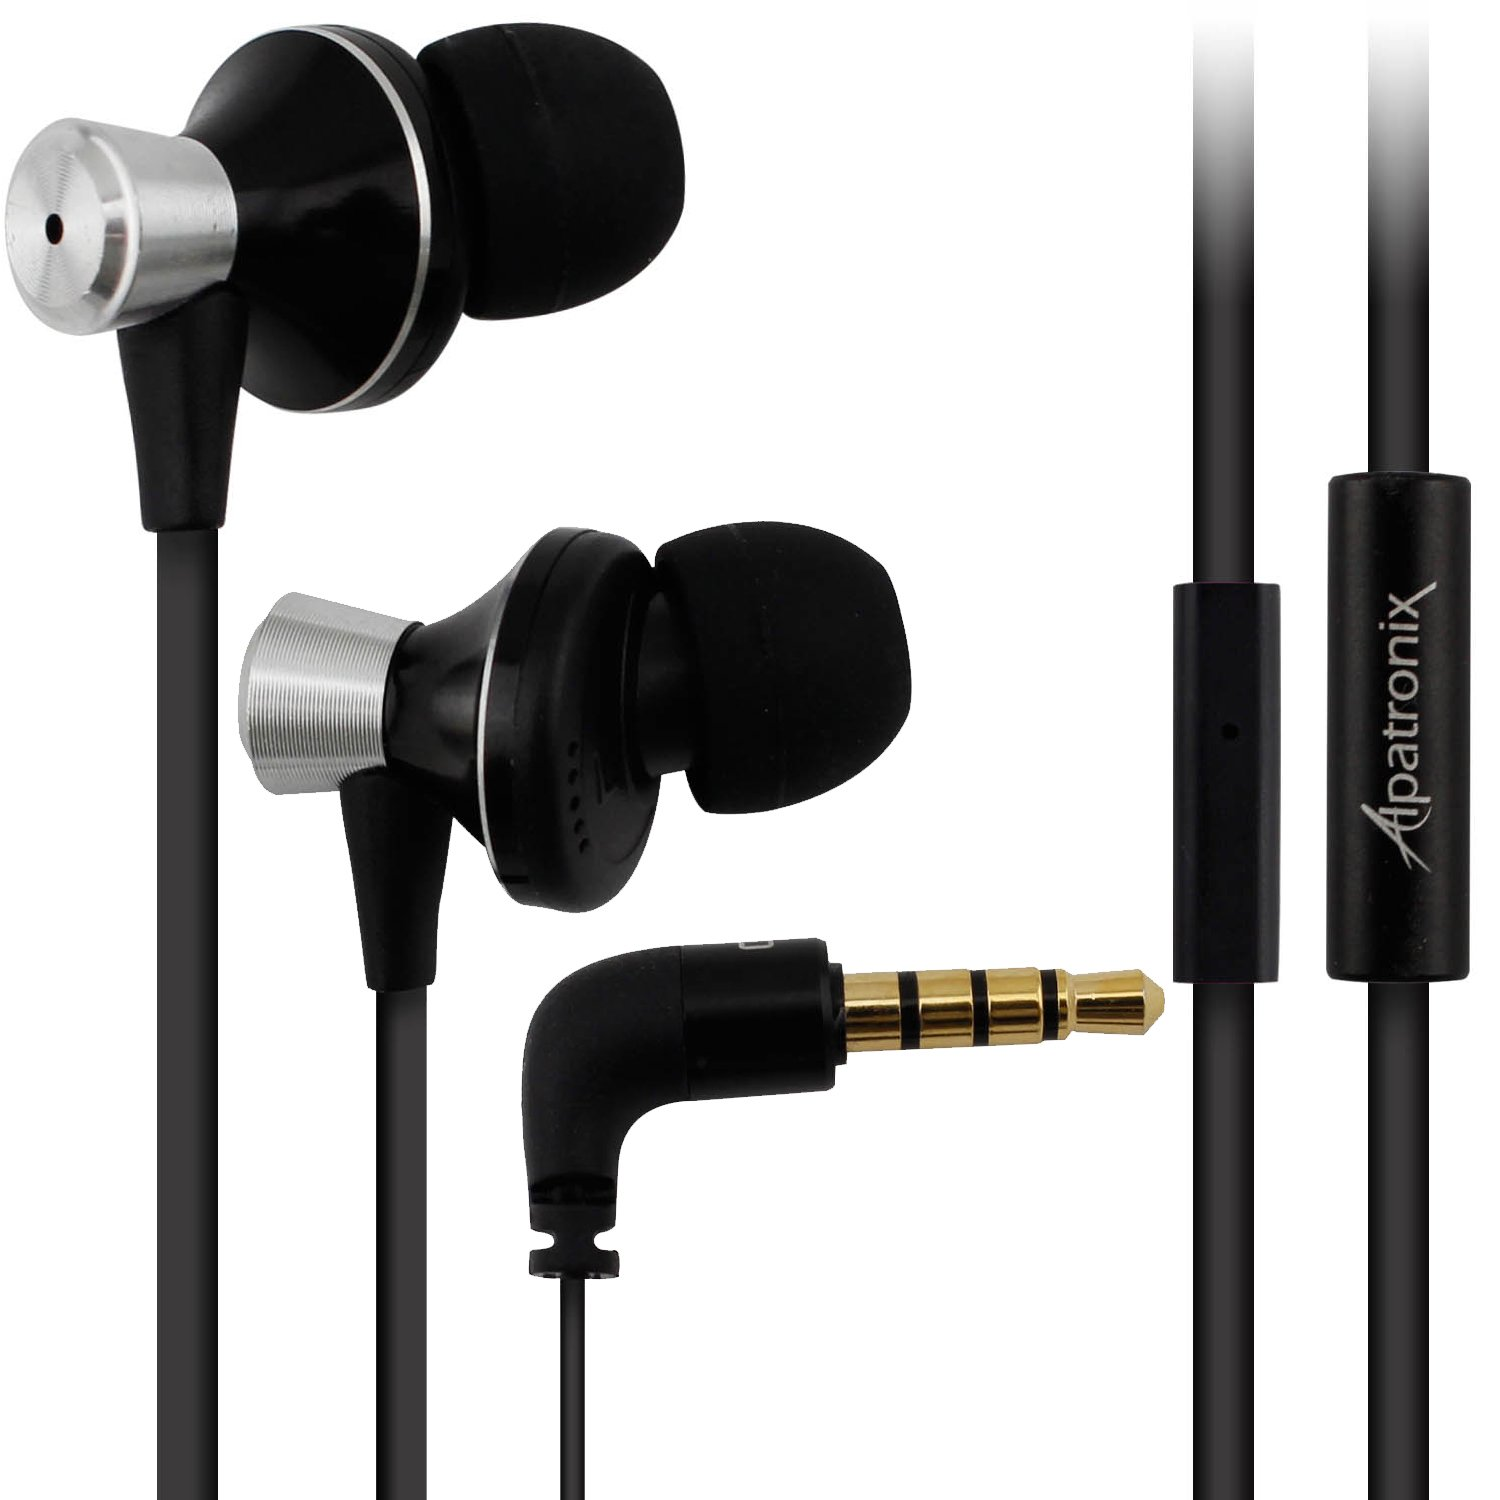 Earbuds, Alpatronix EX100 Universal 1-Button High Performance Stereo In-Ear Headset with Built-in Mic, Tangle-Free Noise Isolating Earphones for Smartphones, Computers, Tablets & Laptops - (Black)